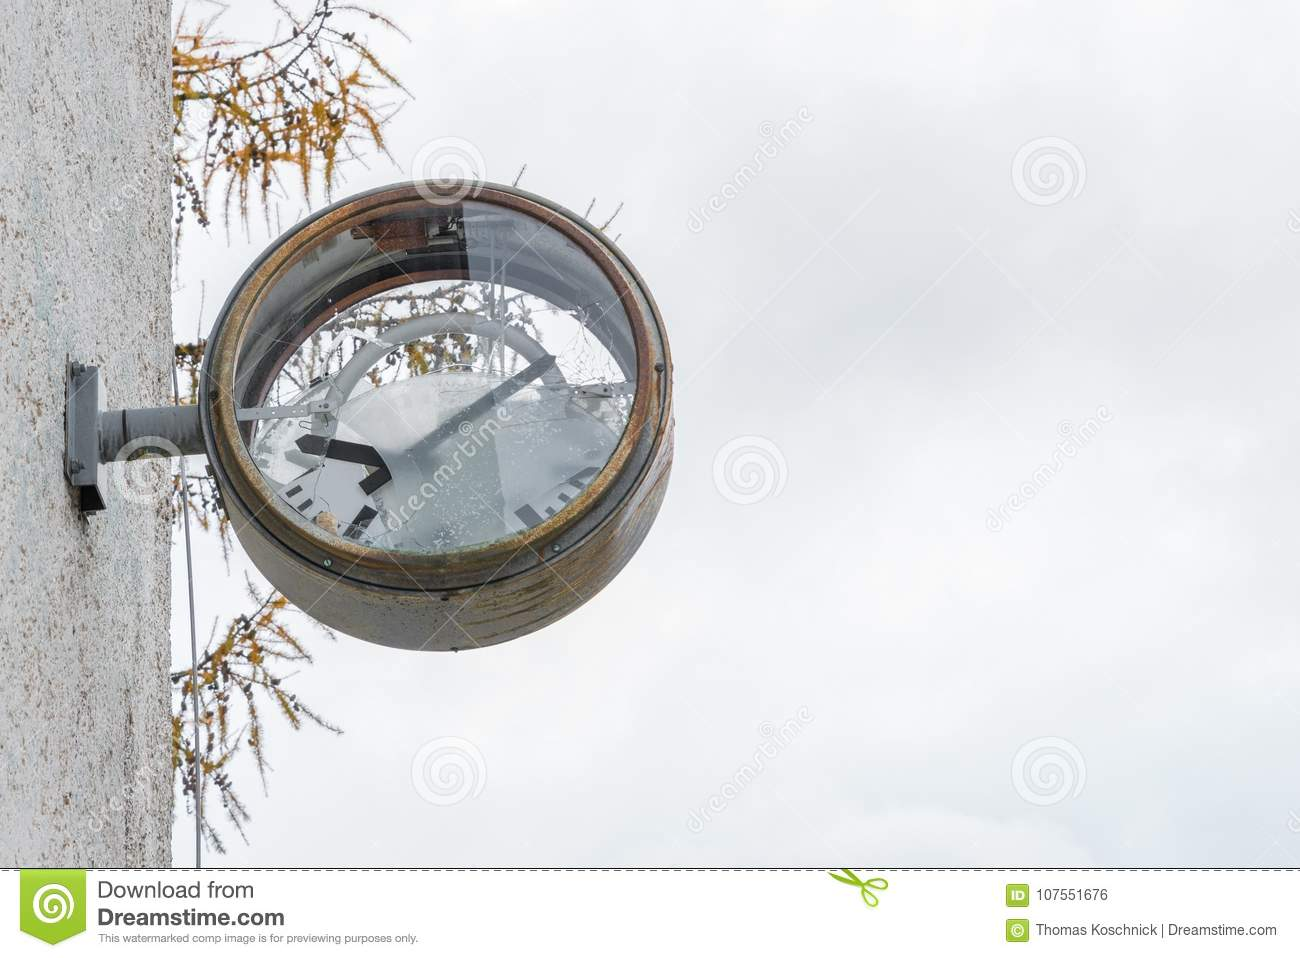 Old rusty clock with broken glass and dial